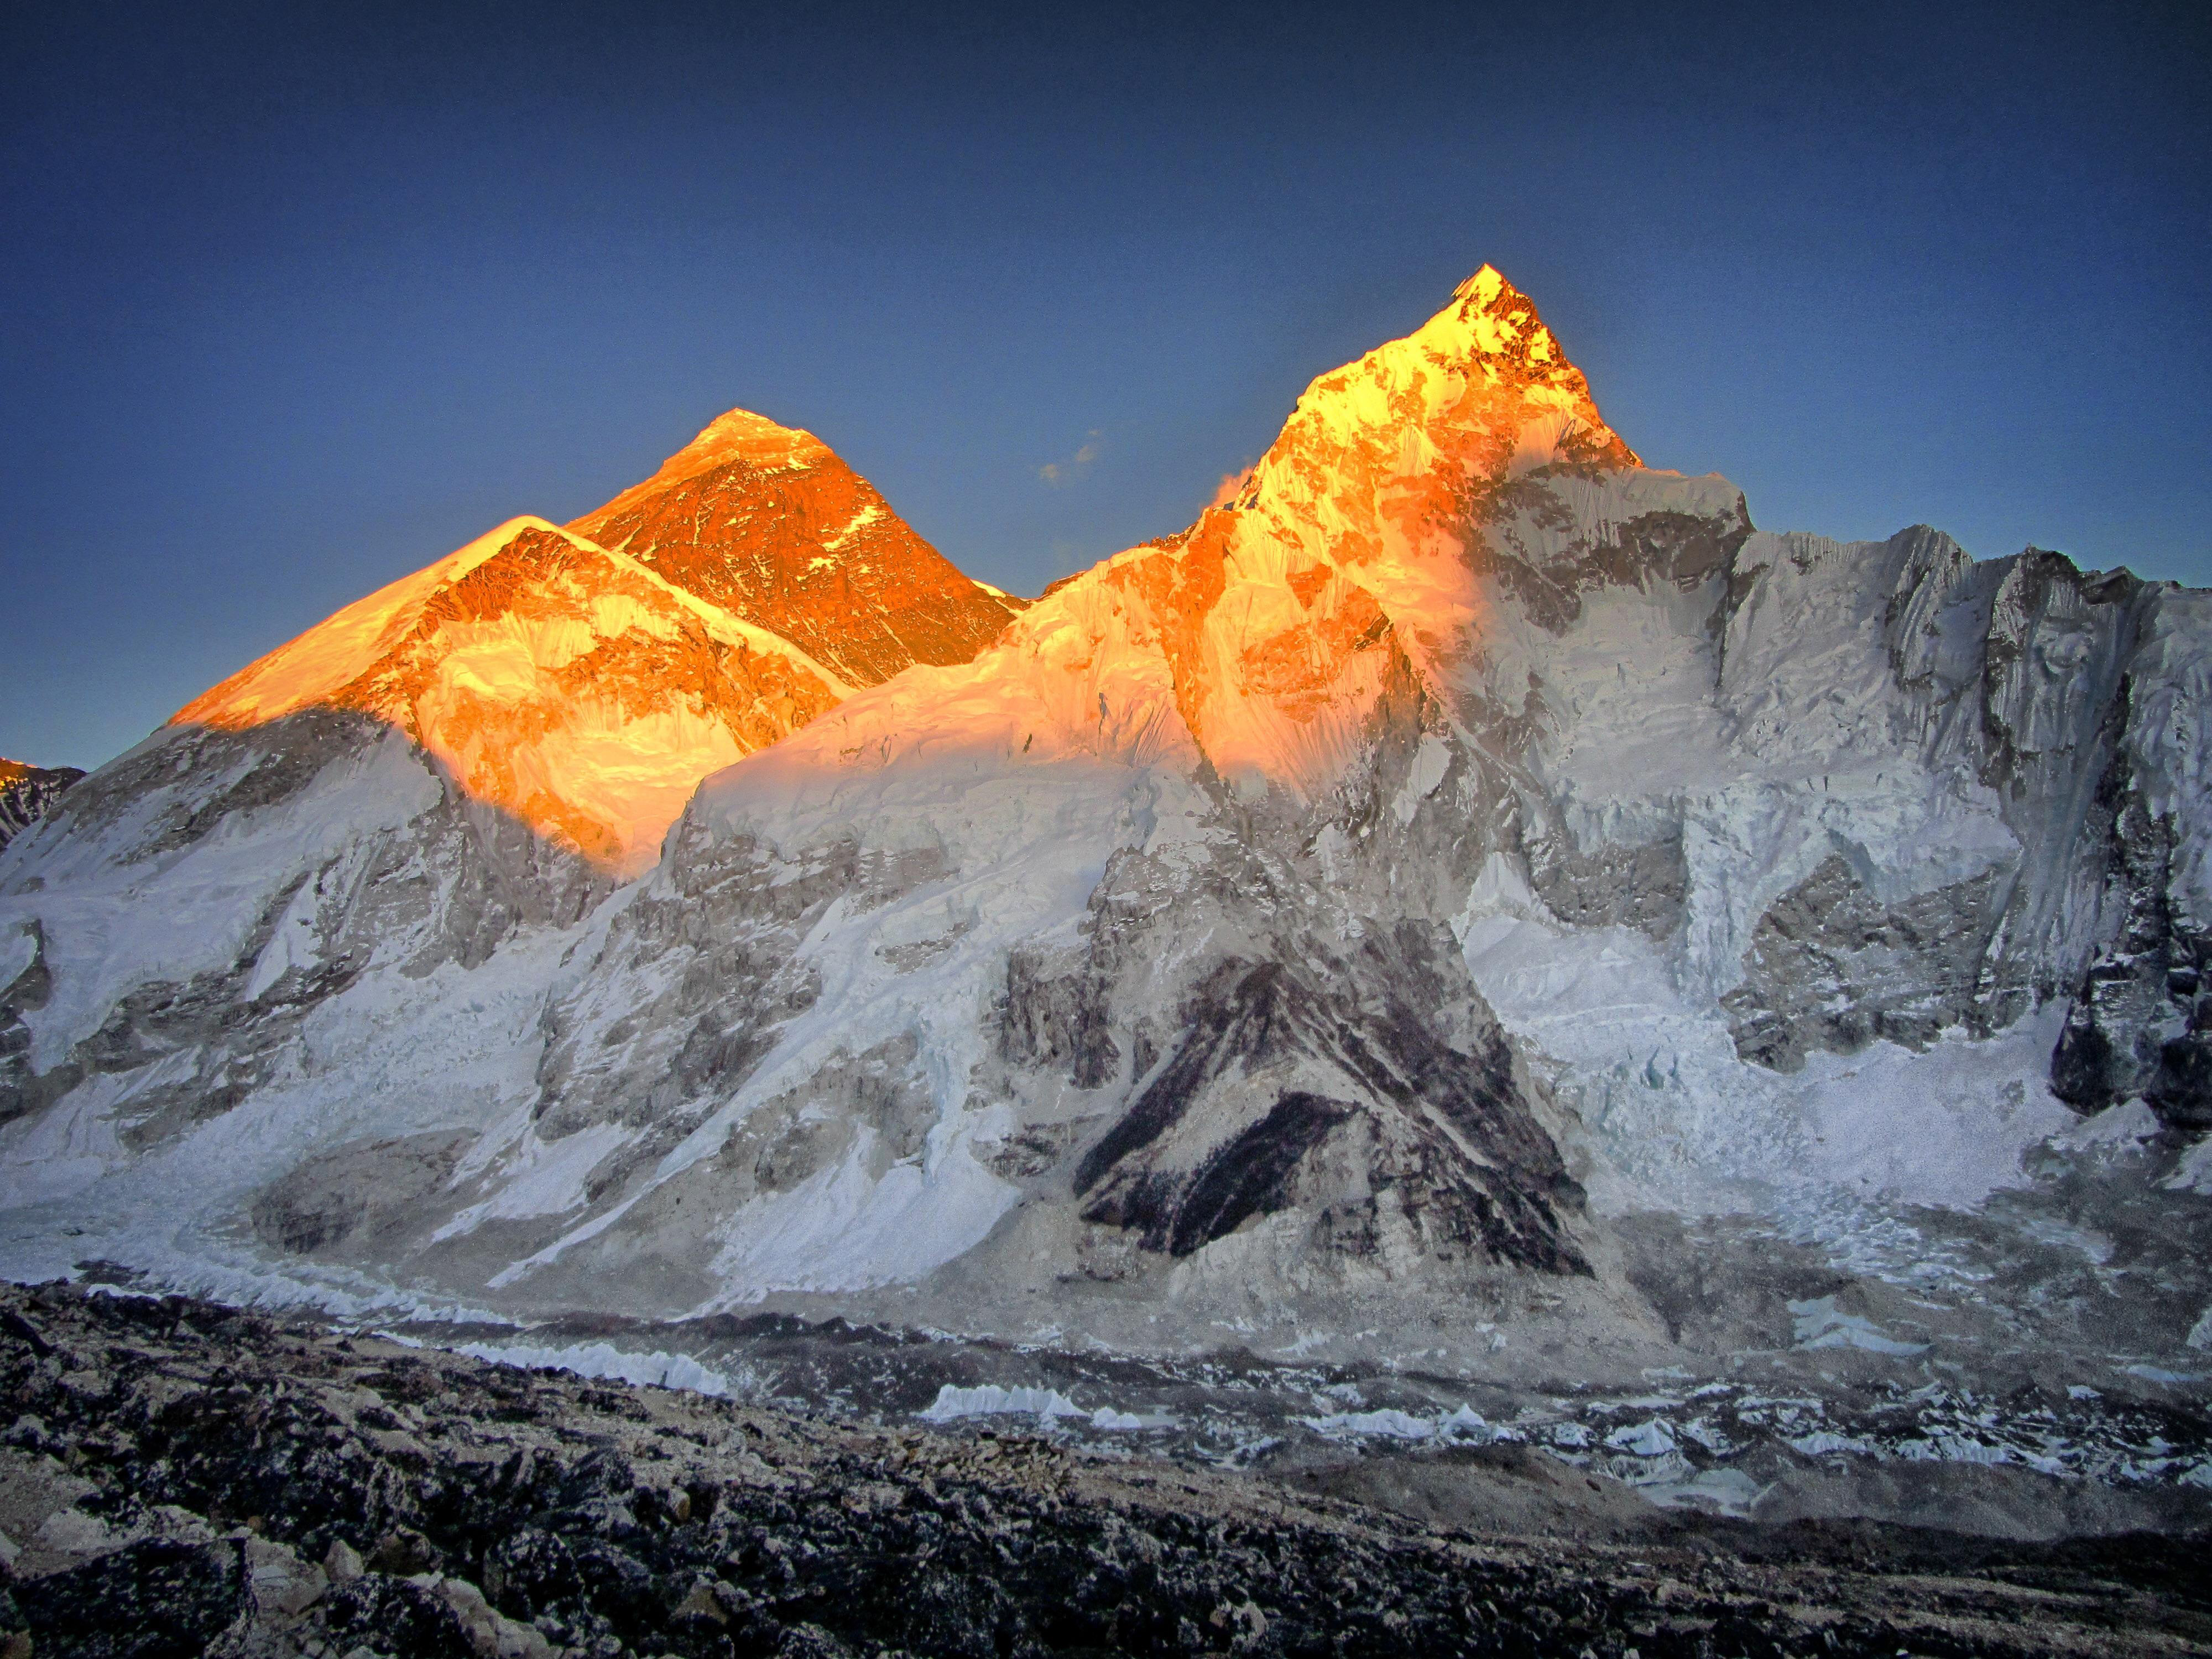 Mount Everest Sunset 4k Hd Artist 4k Wallpapers Images Backgrounds Photos And Pictures